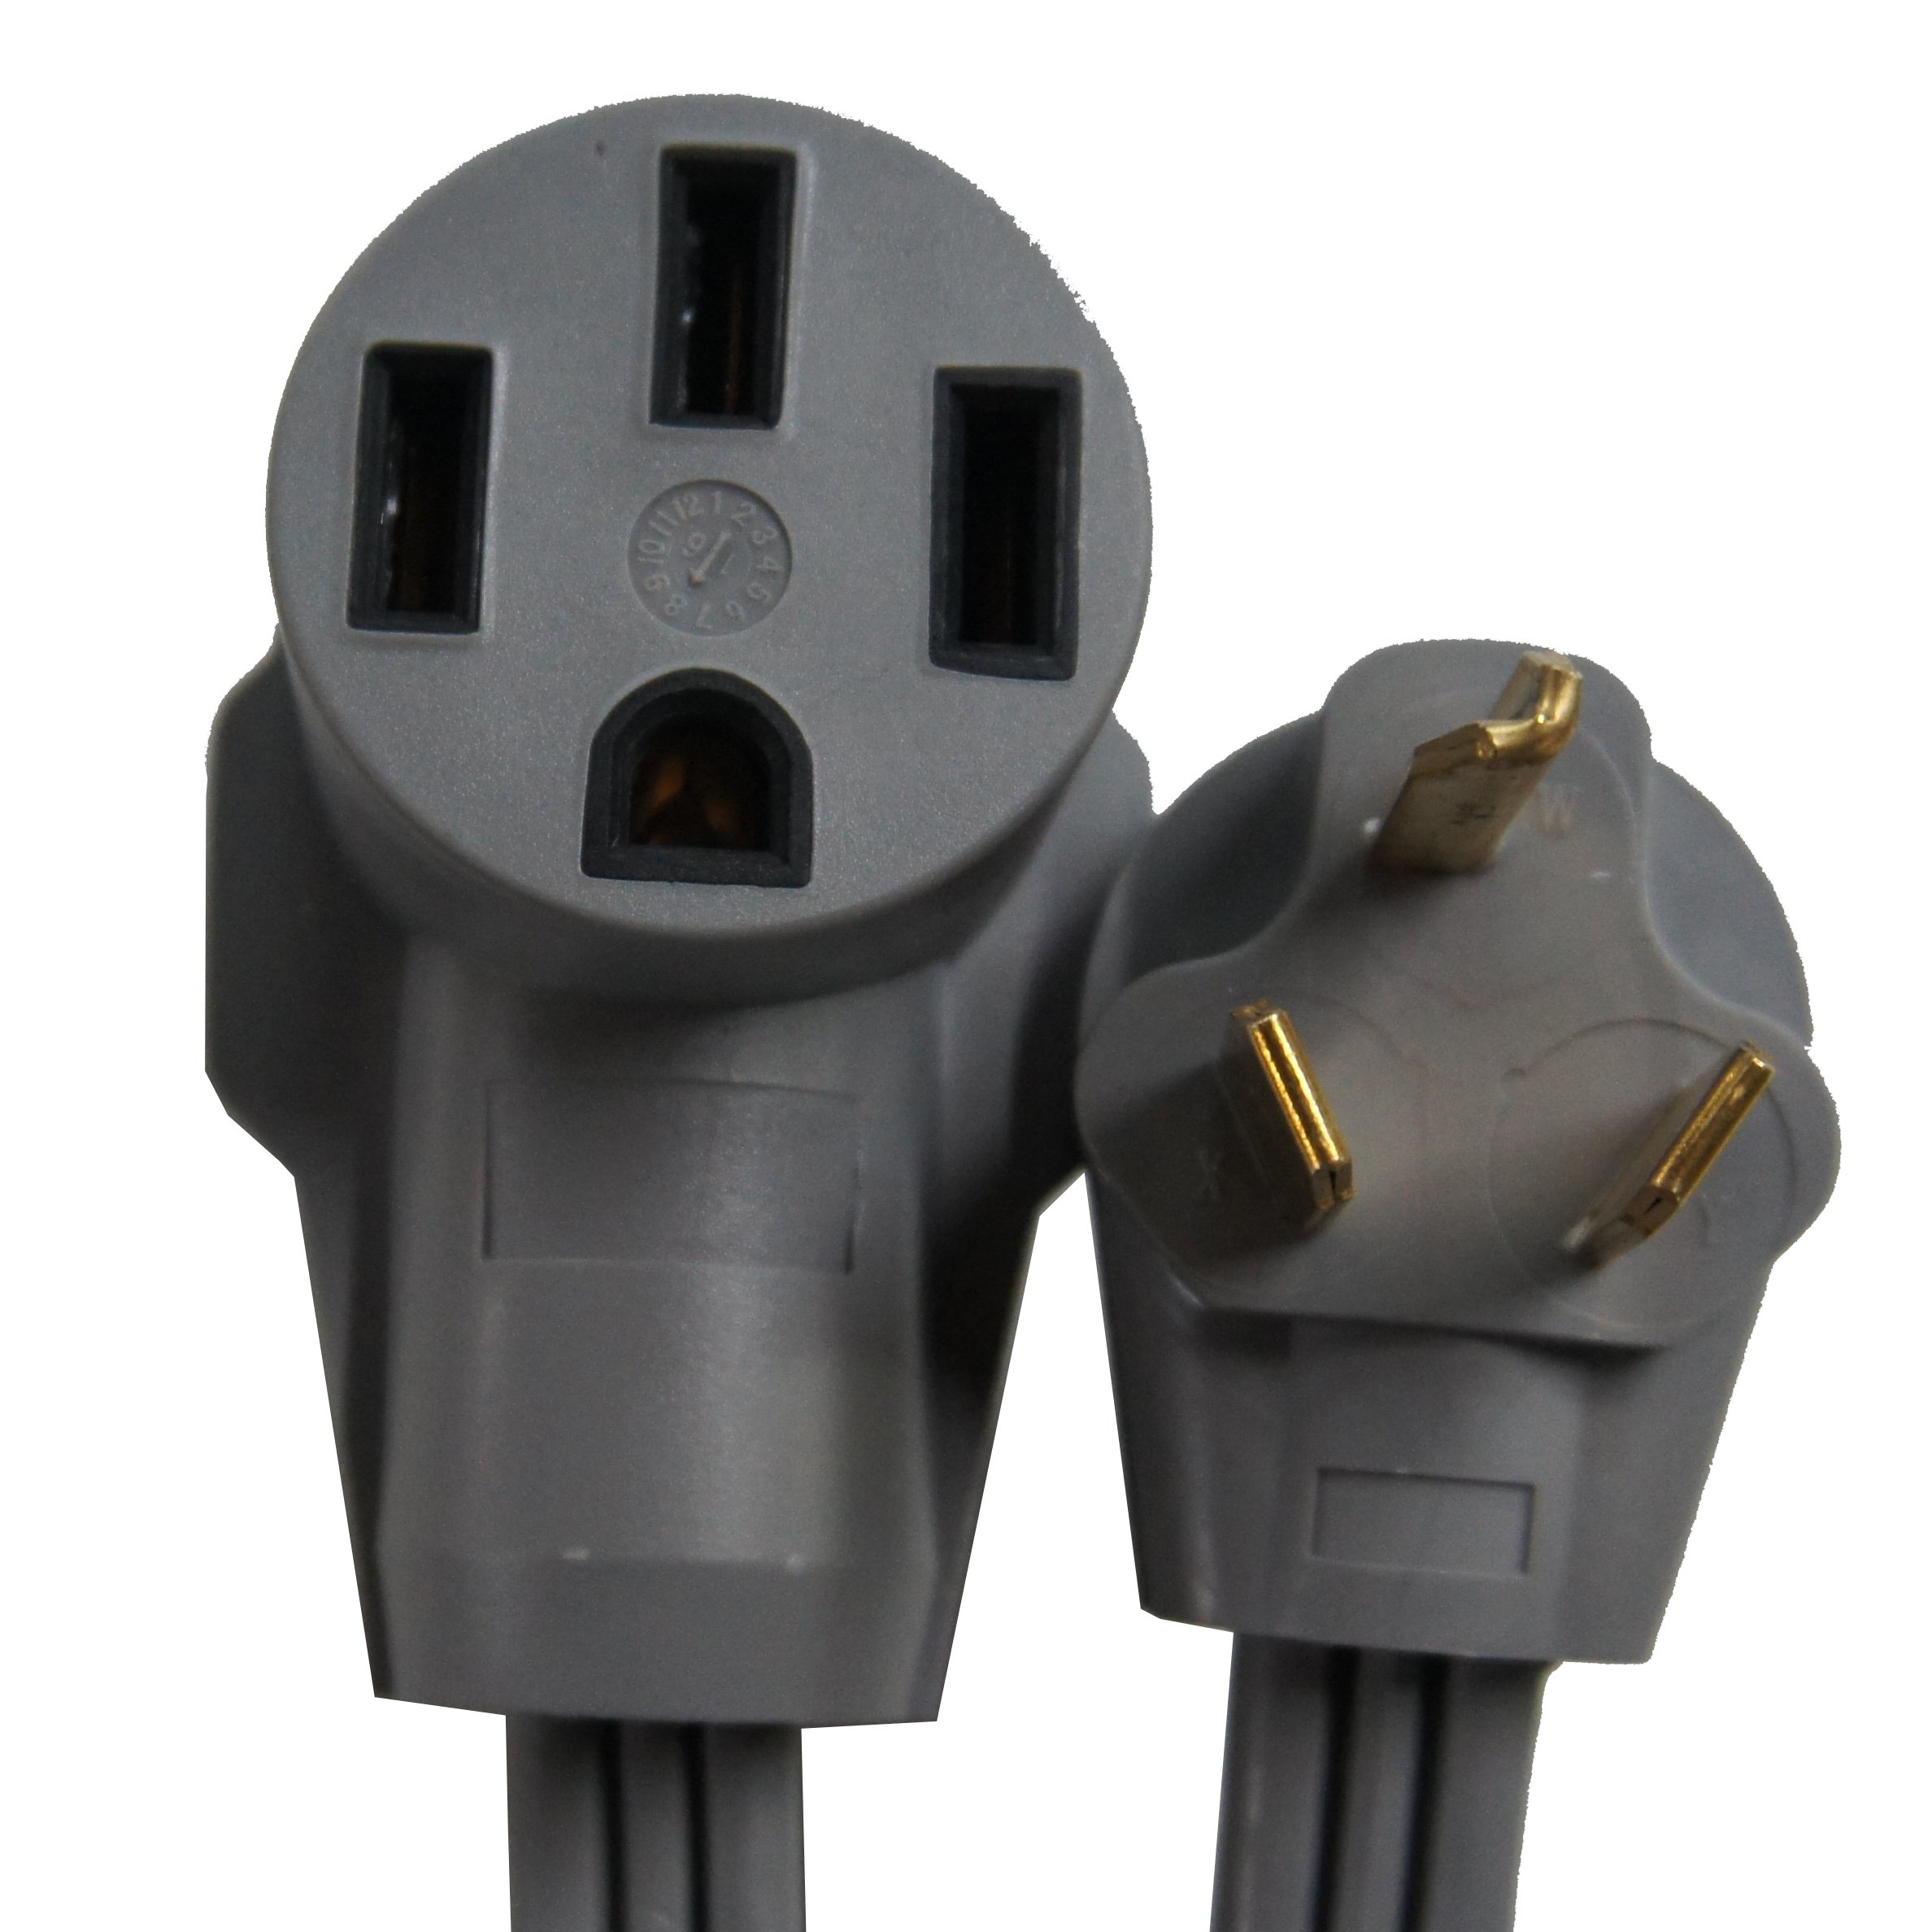 Gomadic Electric Vehicle NEMA 14-50 to NEMA 10-30P Outlet Adapter Cable - Perfect for Tesla and EV Cars by Gomadic